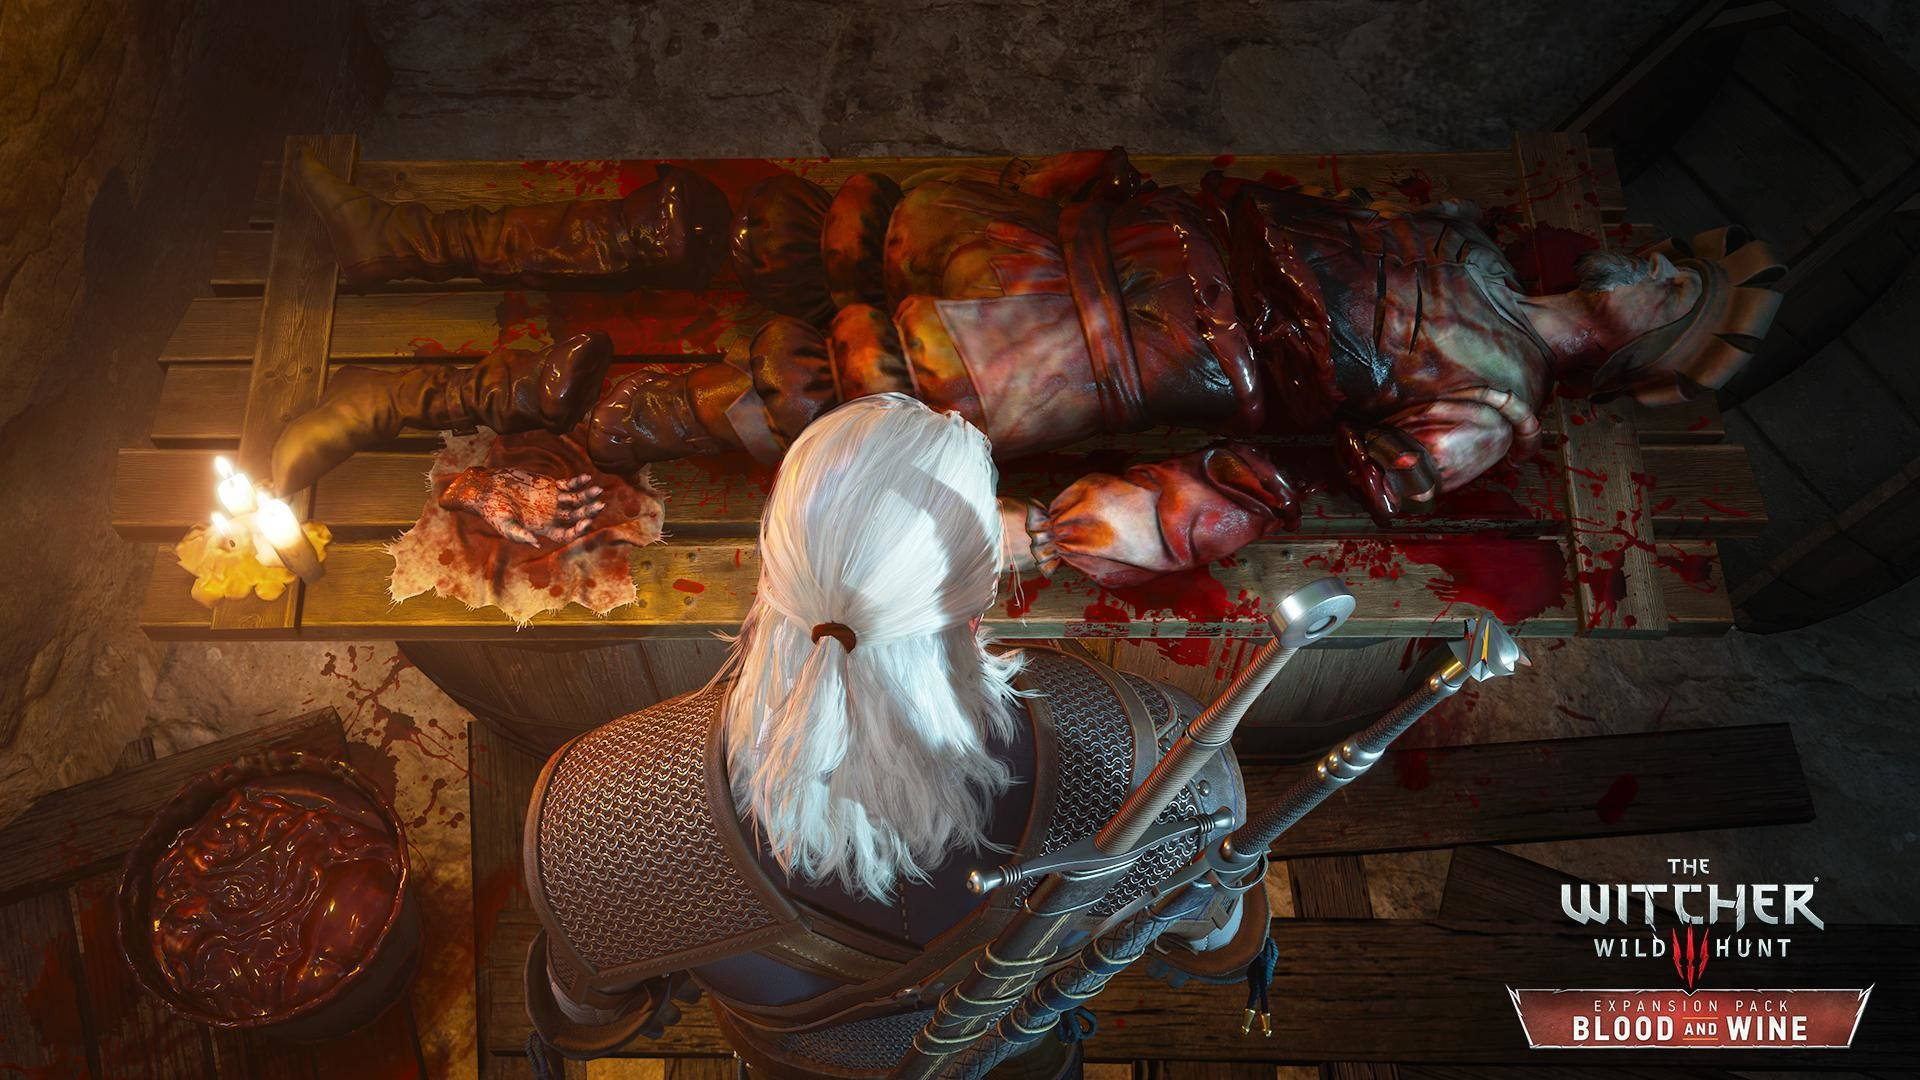 The Witcher : Wild Hunt Wallpapers Images Photos Pictures Backgrounds  1920×1080 The Witcher 3